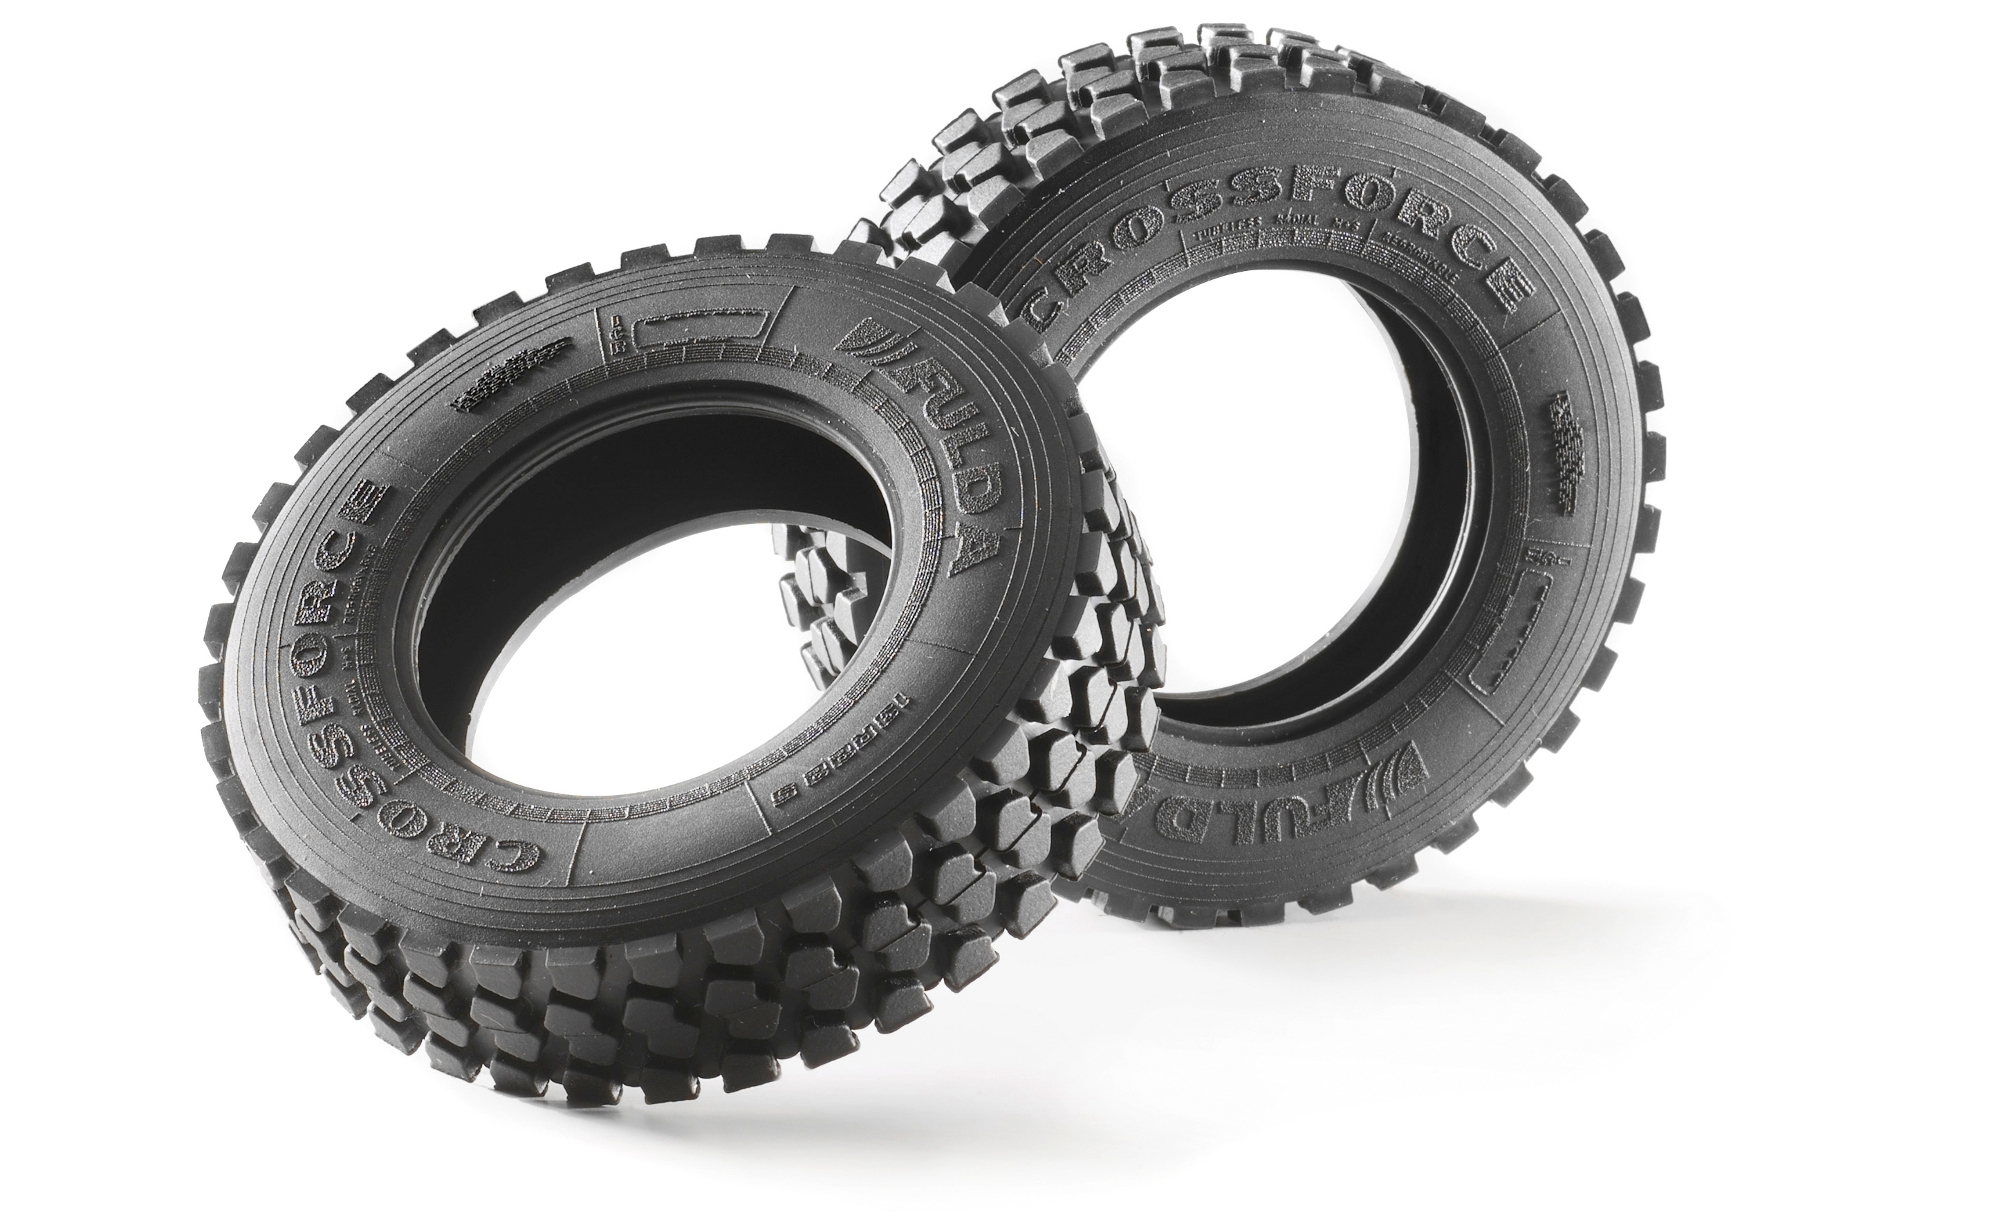 Carson 1:14 Fulda Crossforce Off-road Tires (2)  C907011